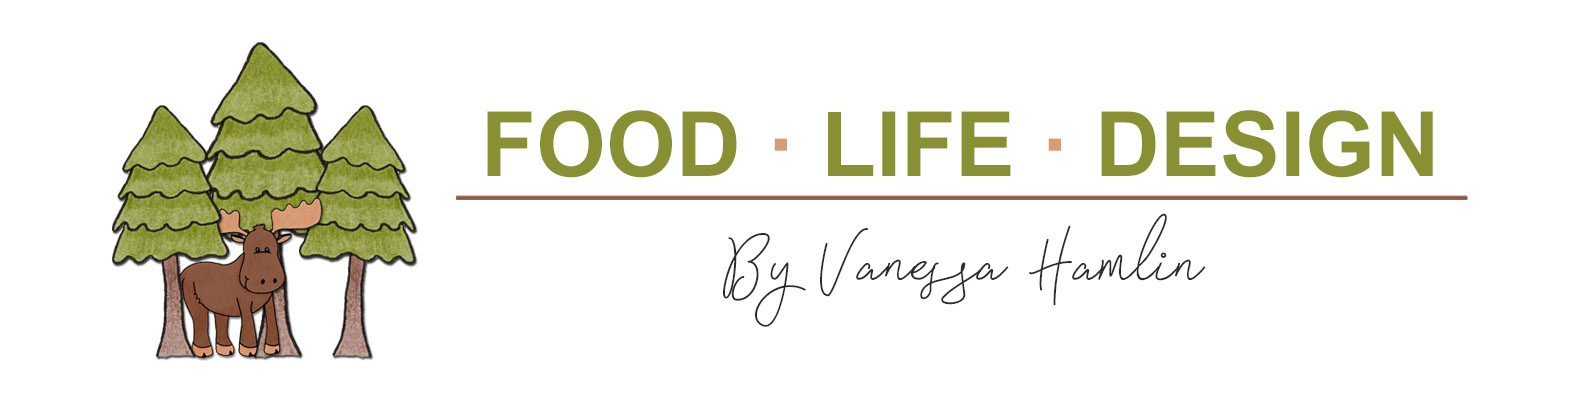 Welome to Food Life Design!